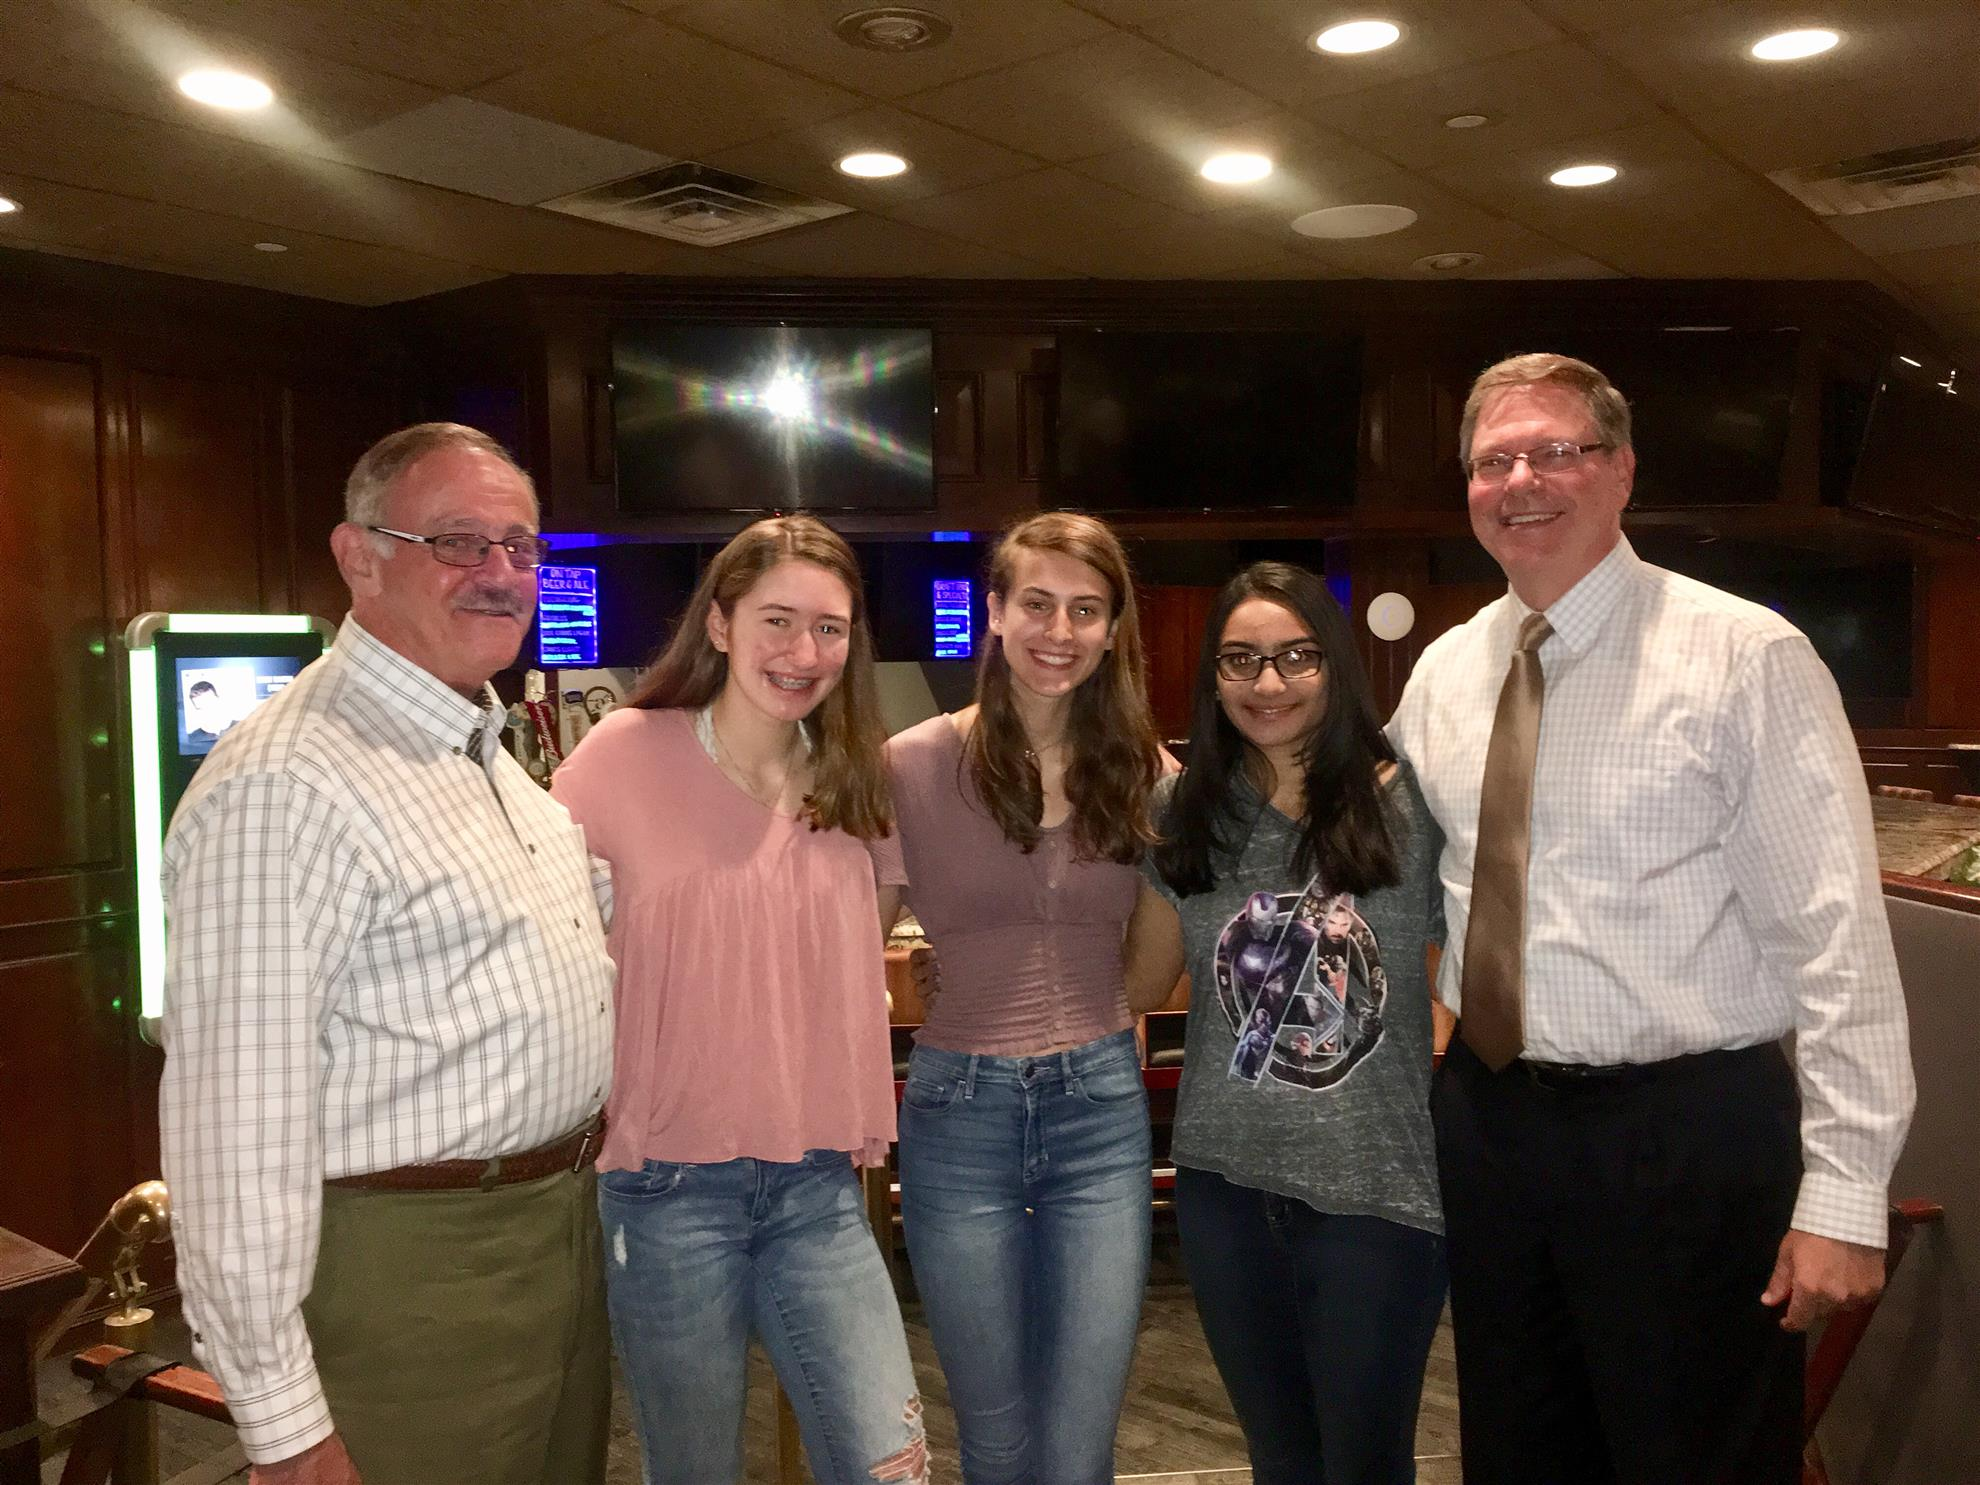 RYLA Students Visit Bordentown Rotary Club